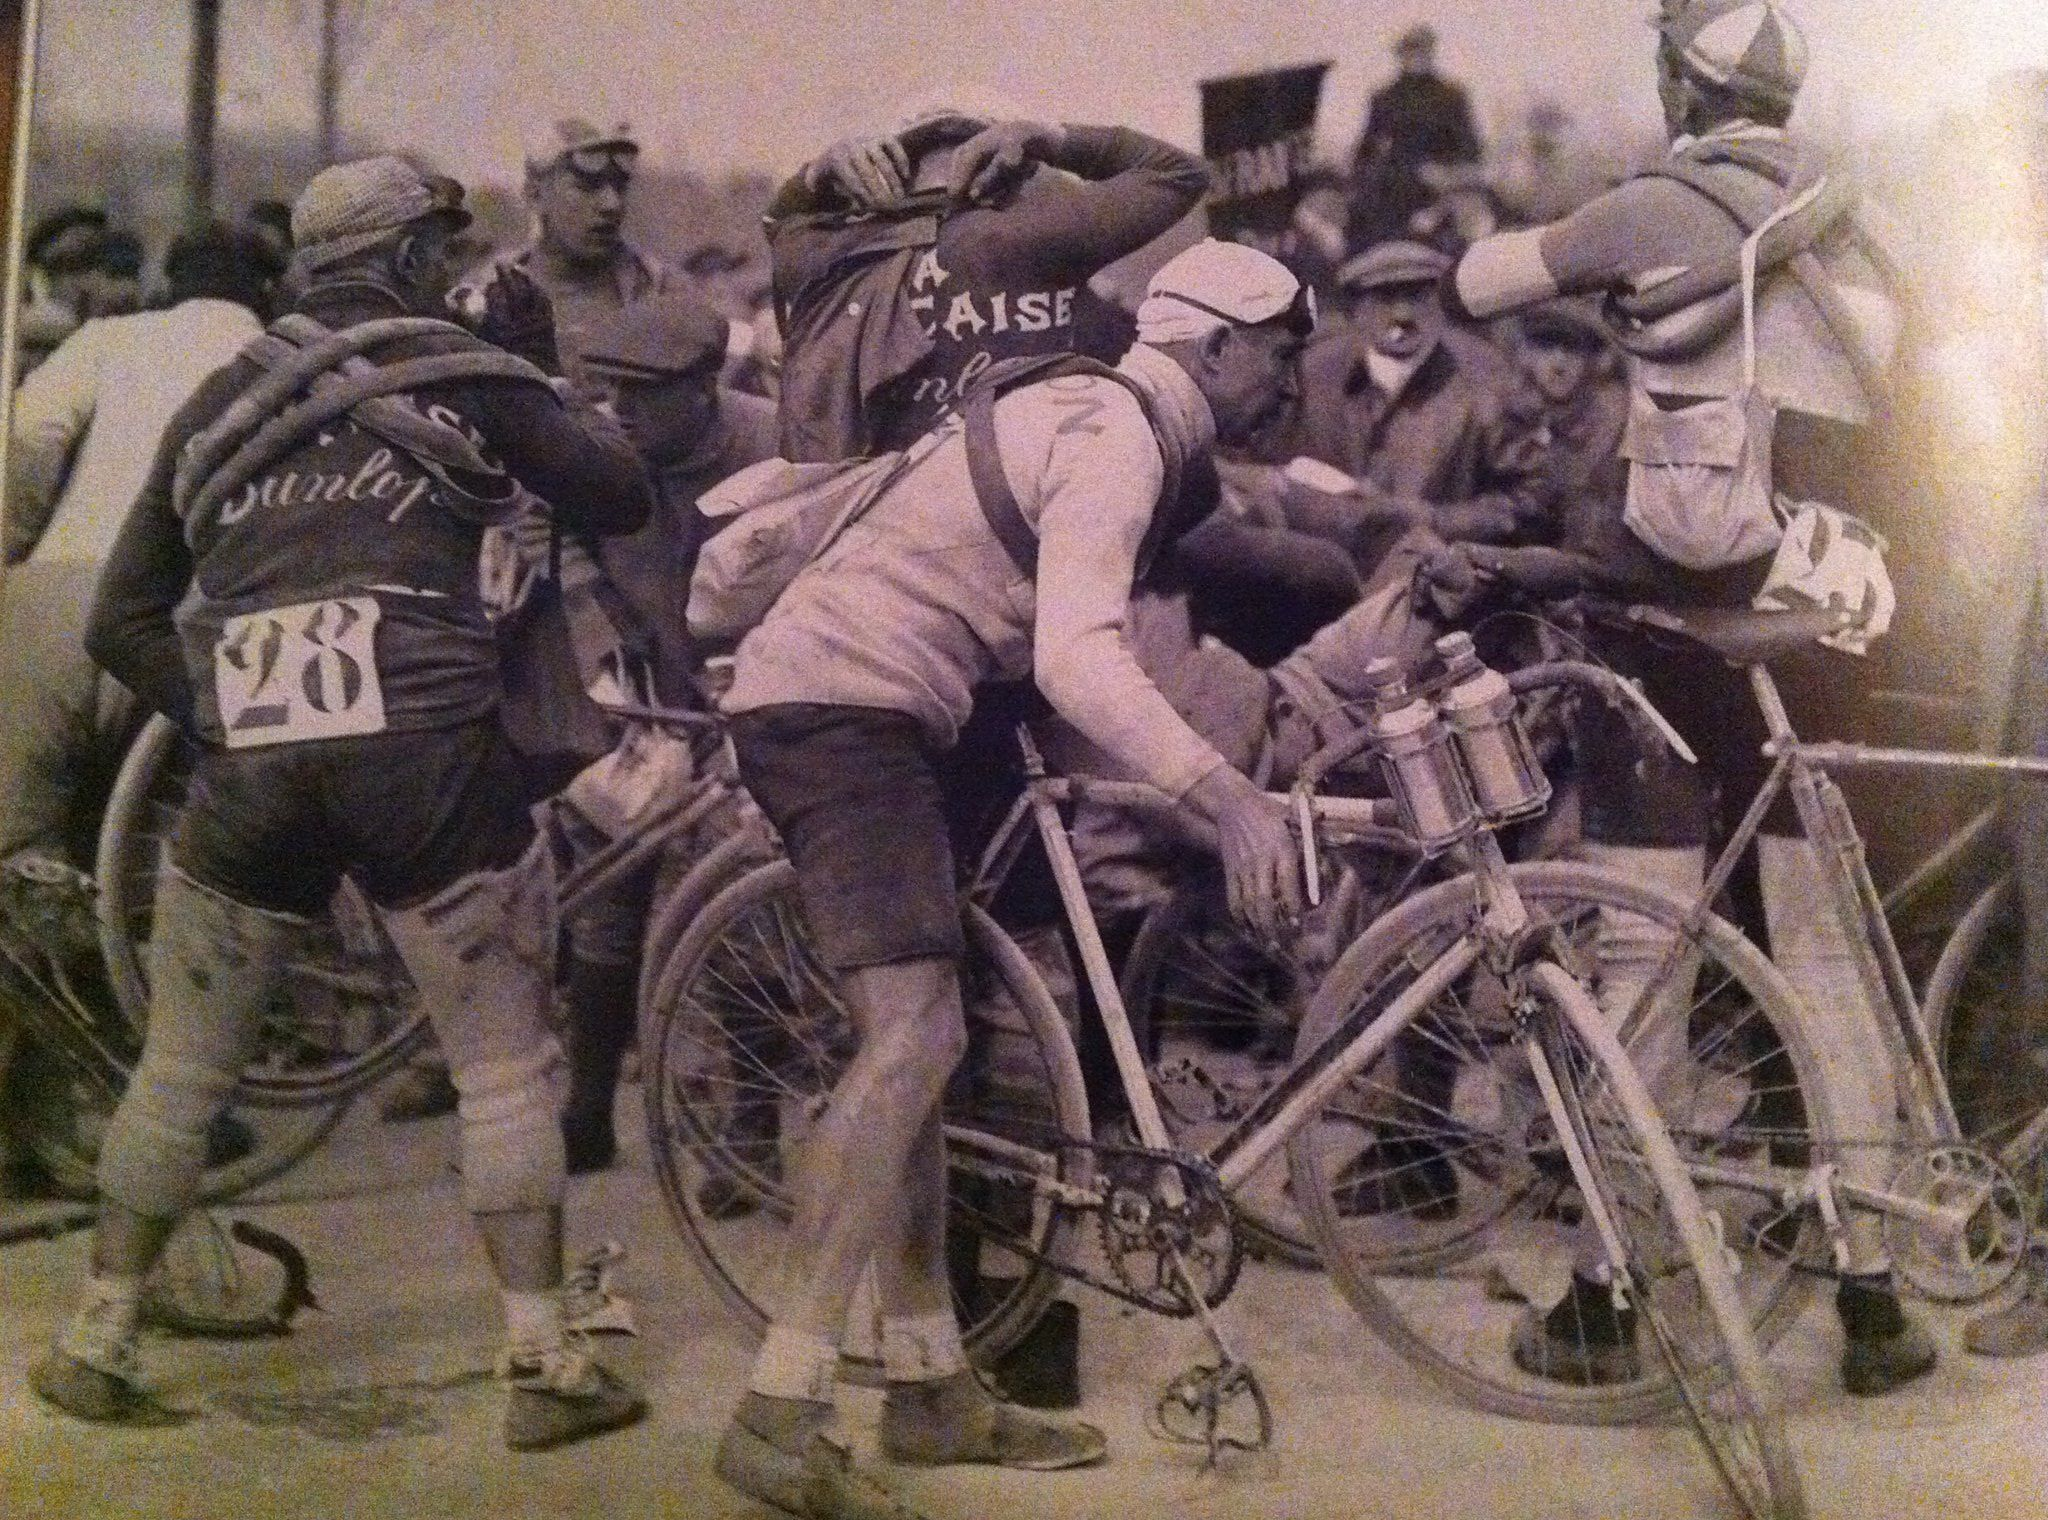 Time for another nostalgic Tuesday photo. We're loving the knee warmers #28 is wearing. Any ideas at the year?